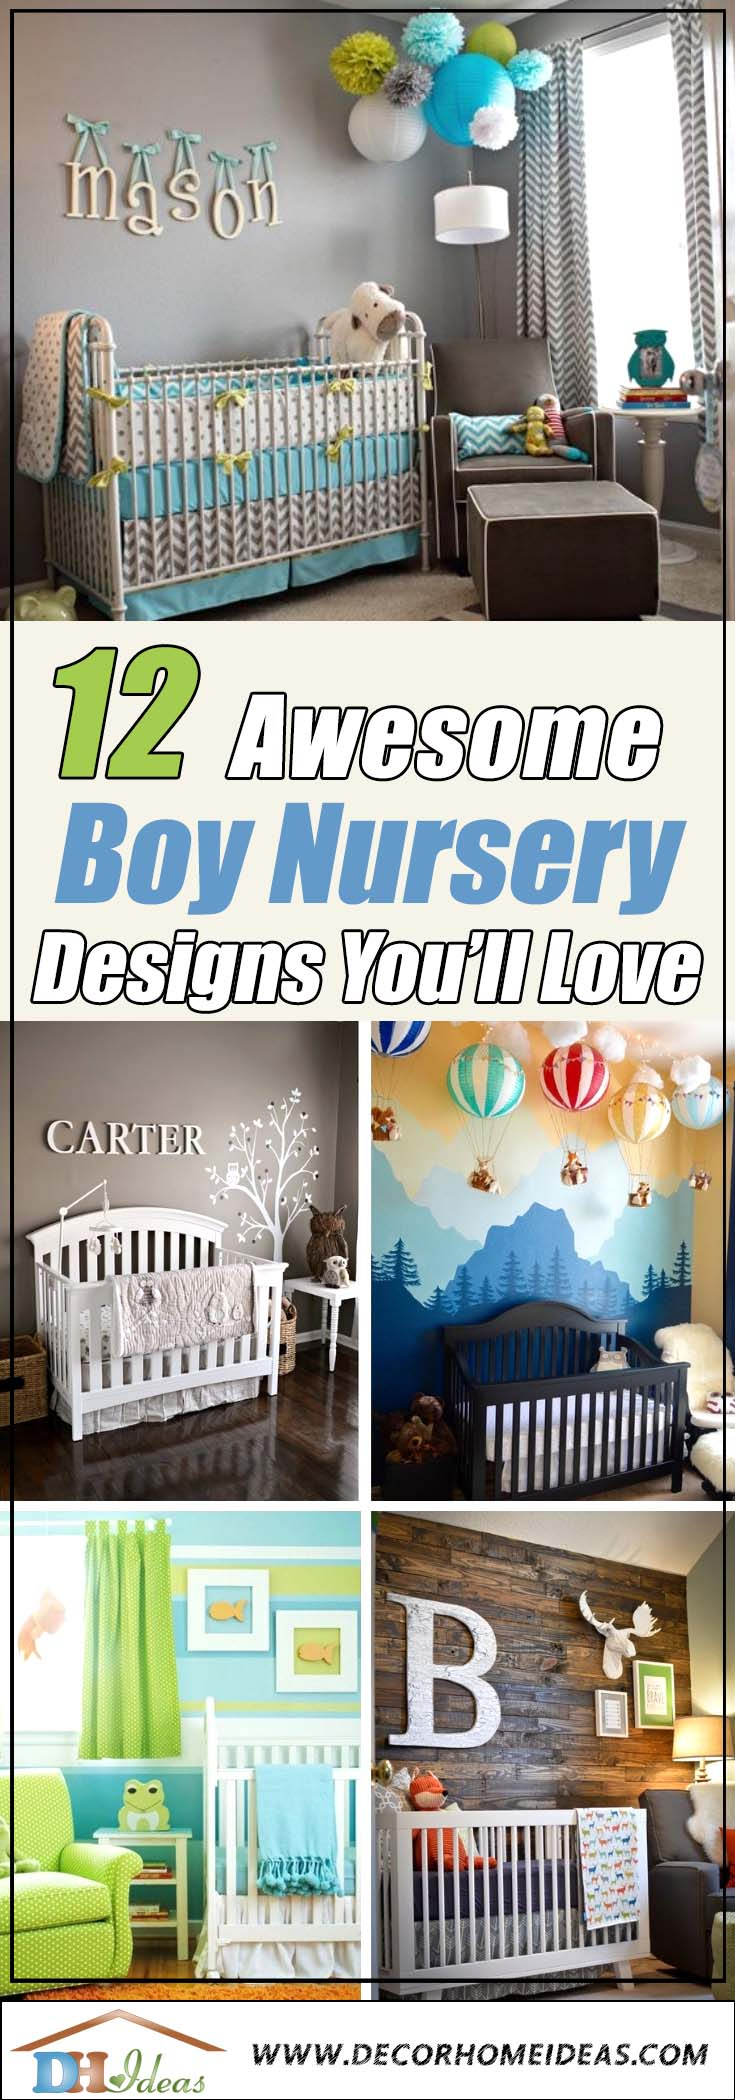 12 Awesome Boy Nursery Designs You Will Love | Decorate your kids room with style. #nursery #nurseryideas #nurserydecor #homedecor #design #interiordesign #decoratingideas #decorhomeideas